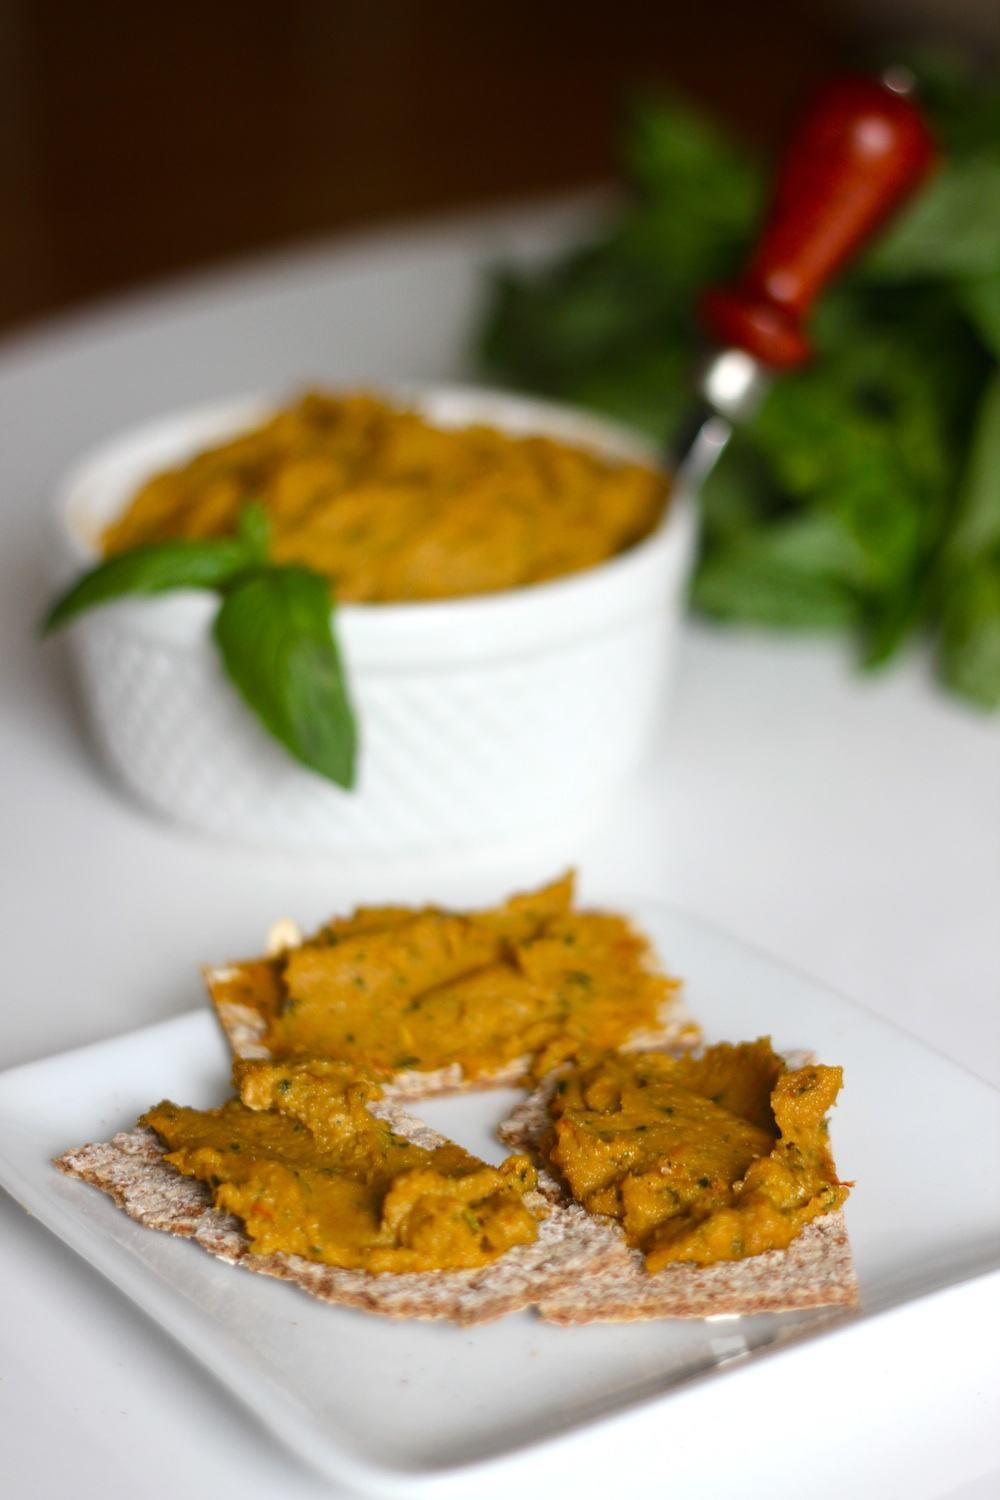 Basil Sundried Tomato Cashew Cheese